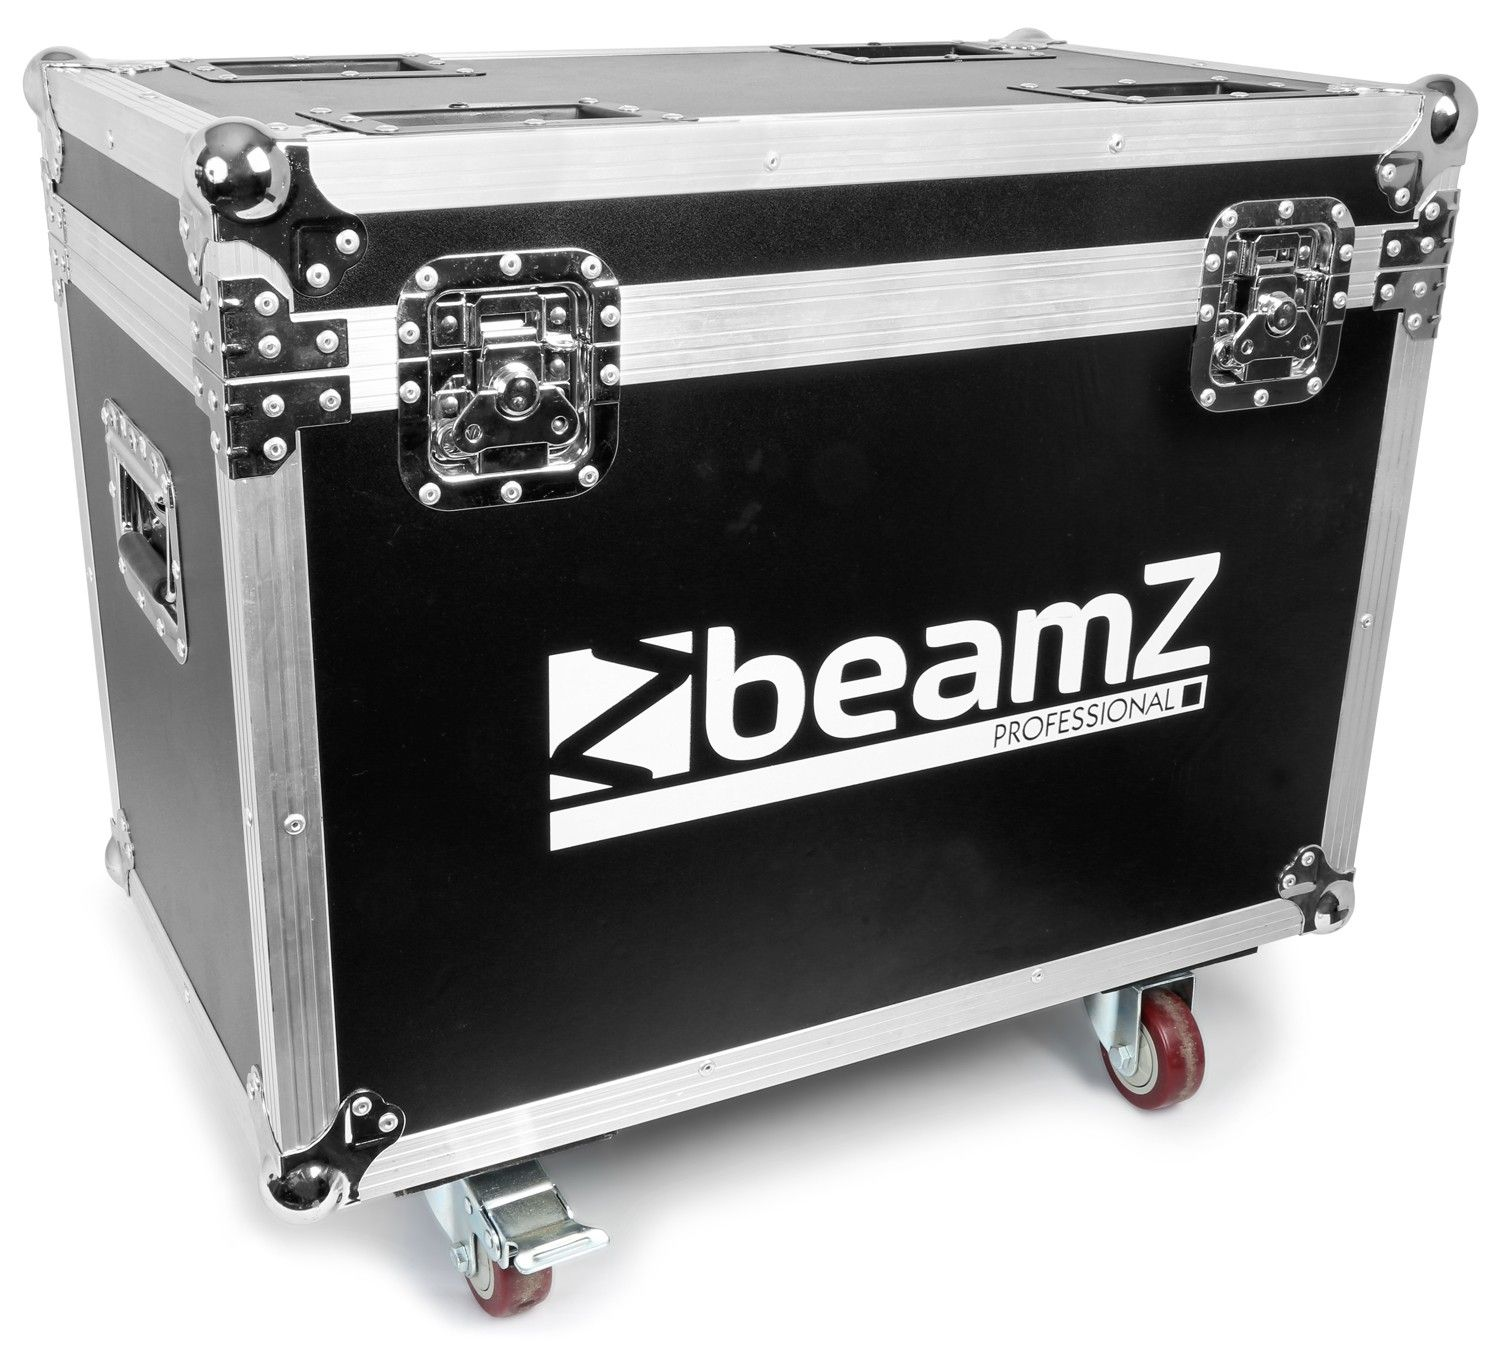 BeamZ Flightcase voor 2 stuks Panther 2R movingheads DOWN